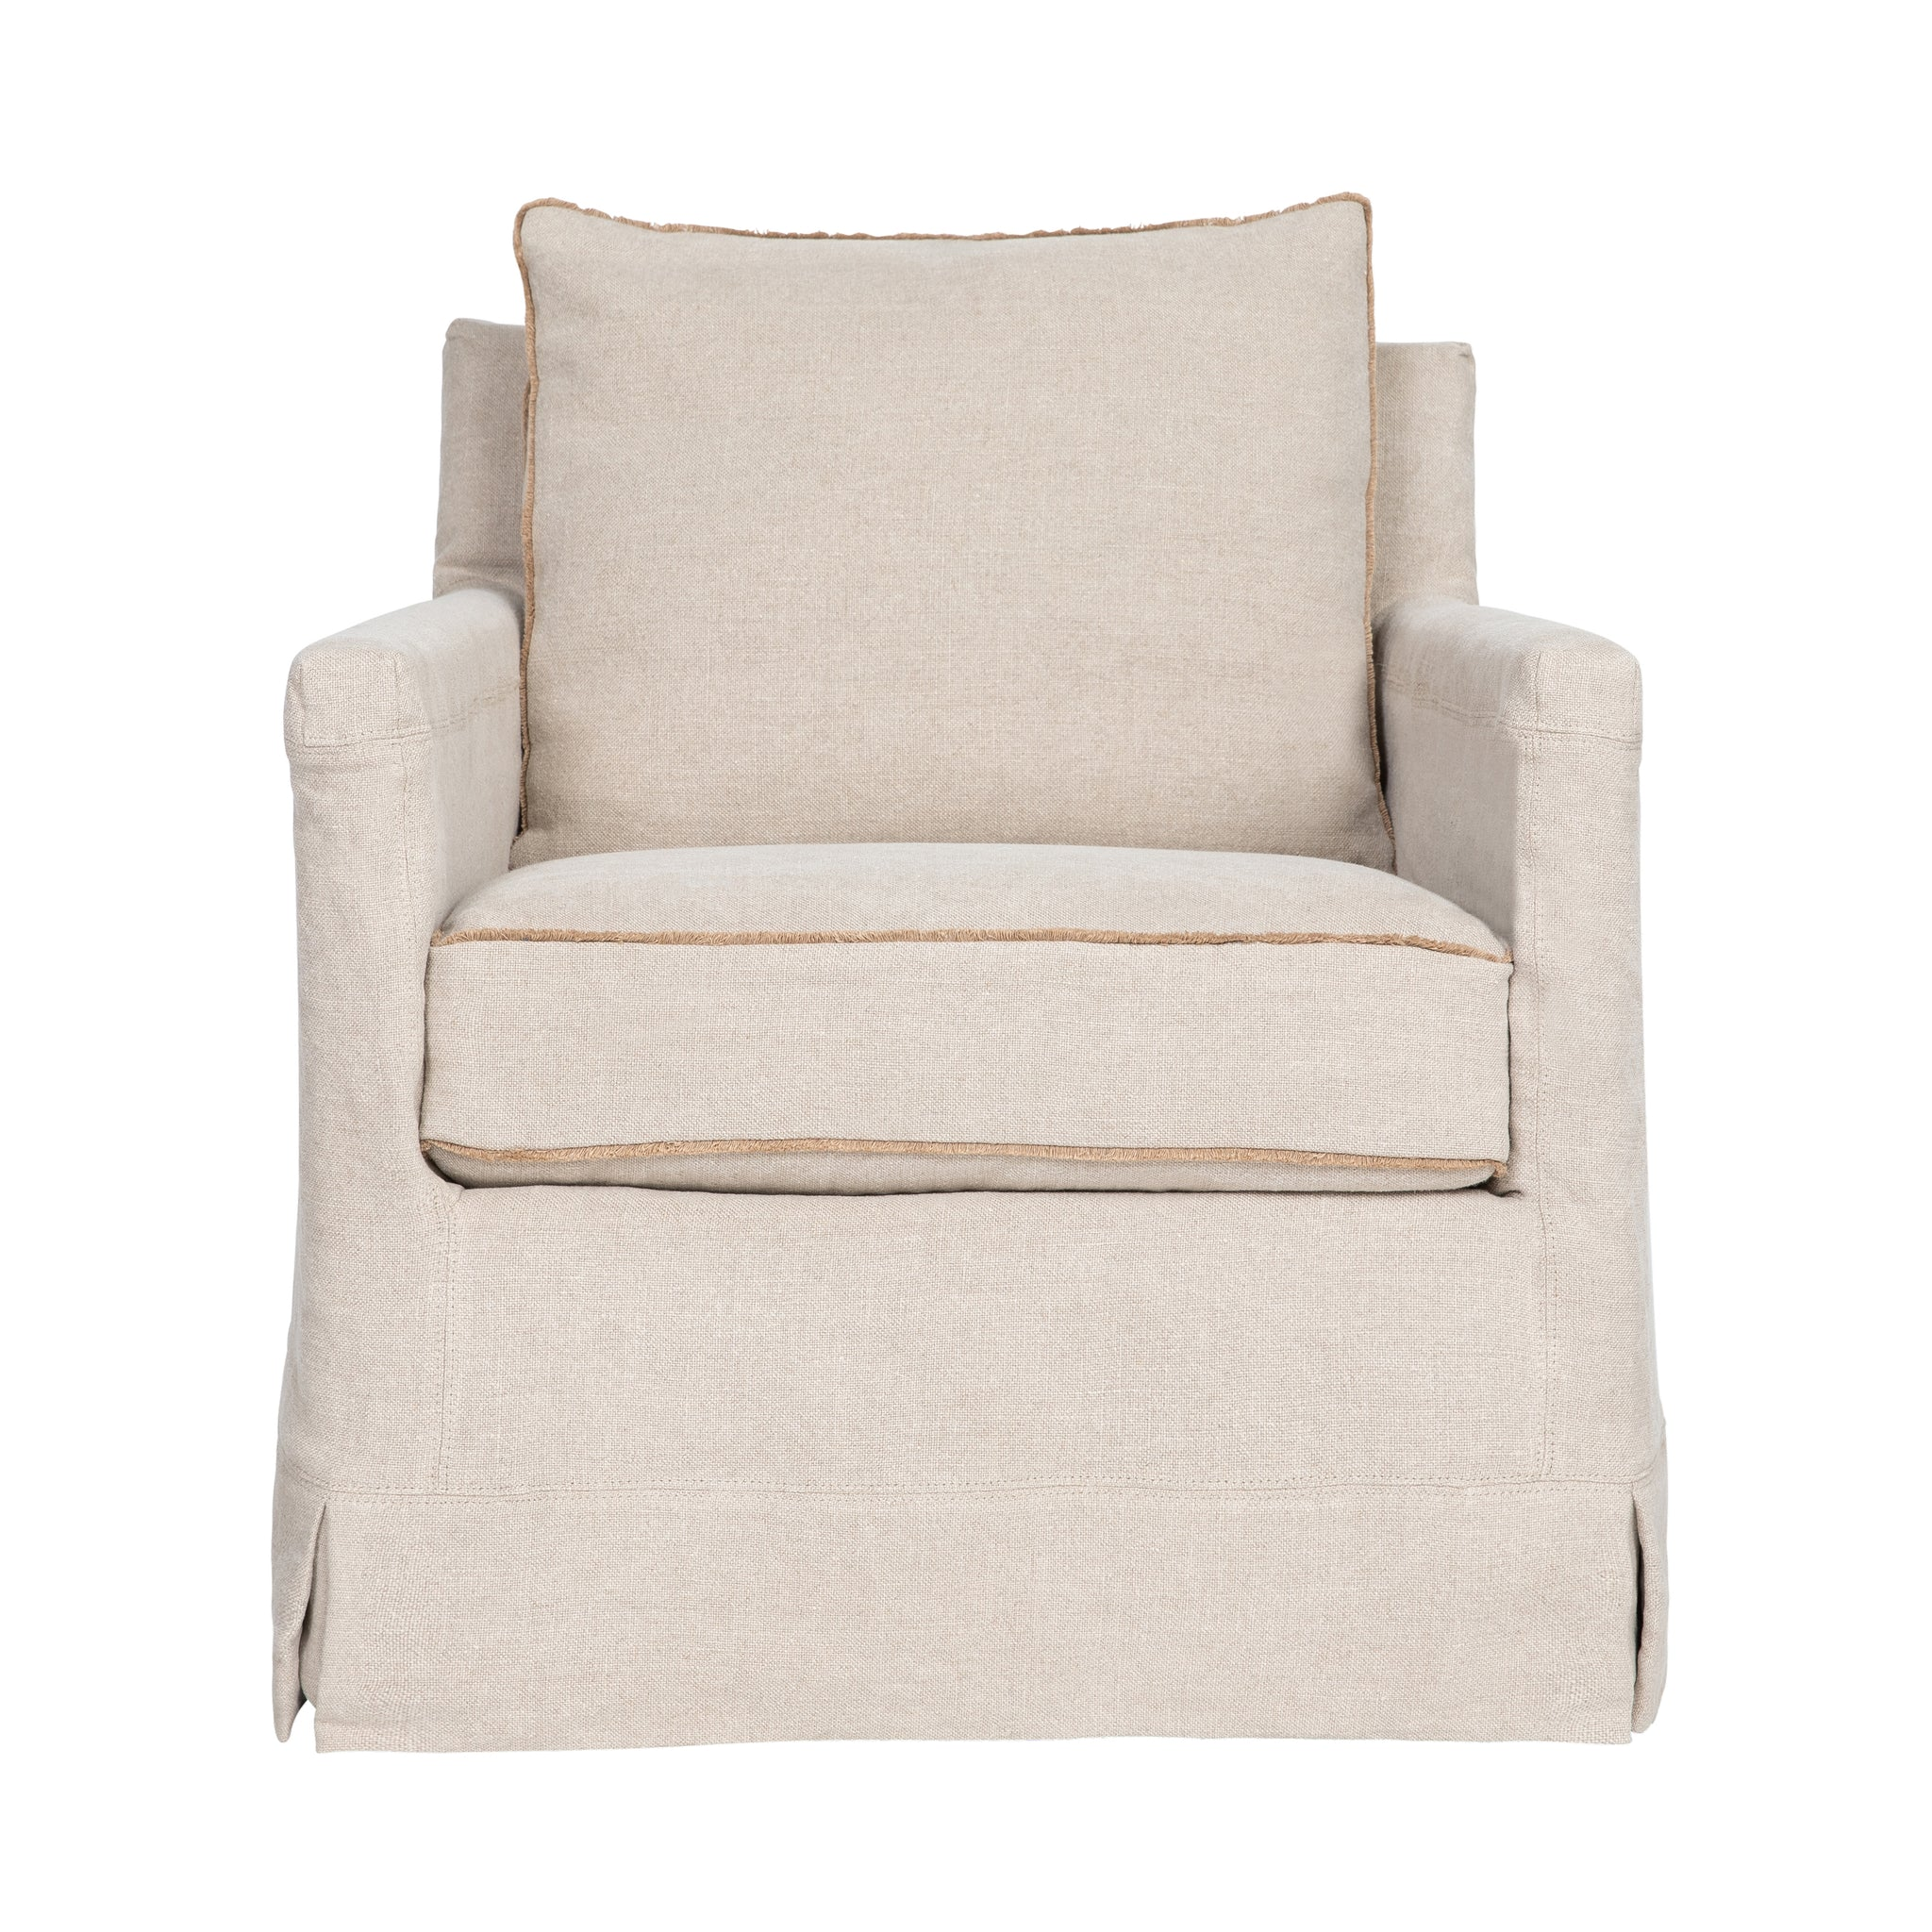 Peyton Slipcovered Swivel Chair